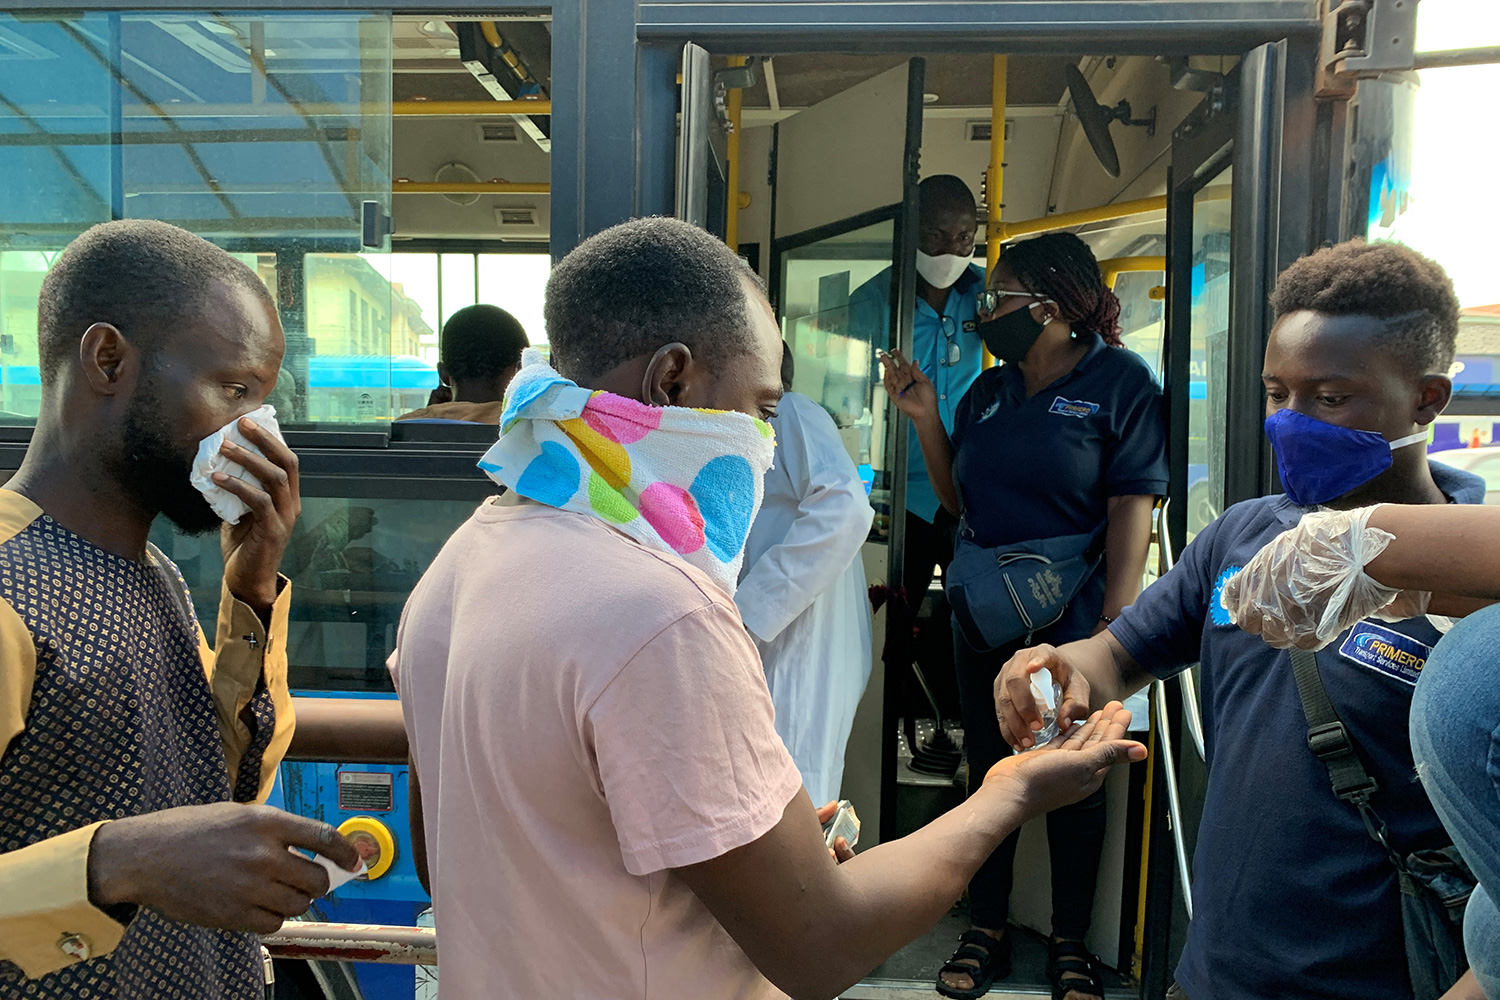 Public transport bus staff offers hand-sanitizer to a passenger who is about to board the bus on the first day of the easing of the lockdown measures during the outbreak of the coronavirus disease (COVID-19) in Lagos, Nigeria May 4, 2020. The photo shows a bus driver dispensing sanitizer to passengers as they board. REUTERS/Temilade Adelaja